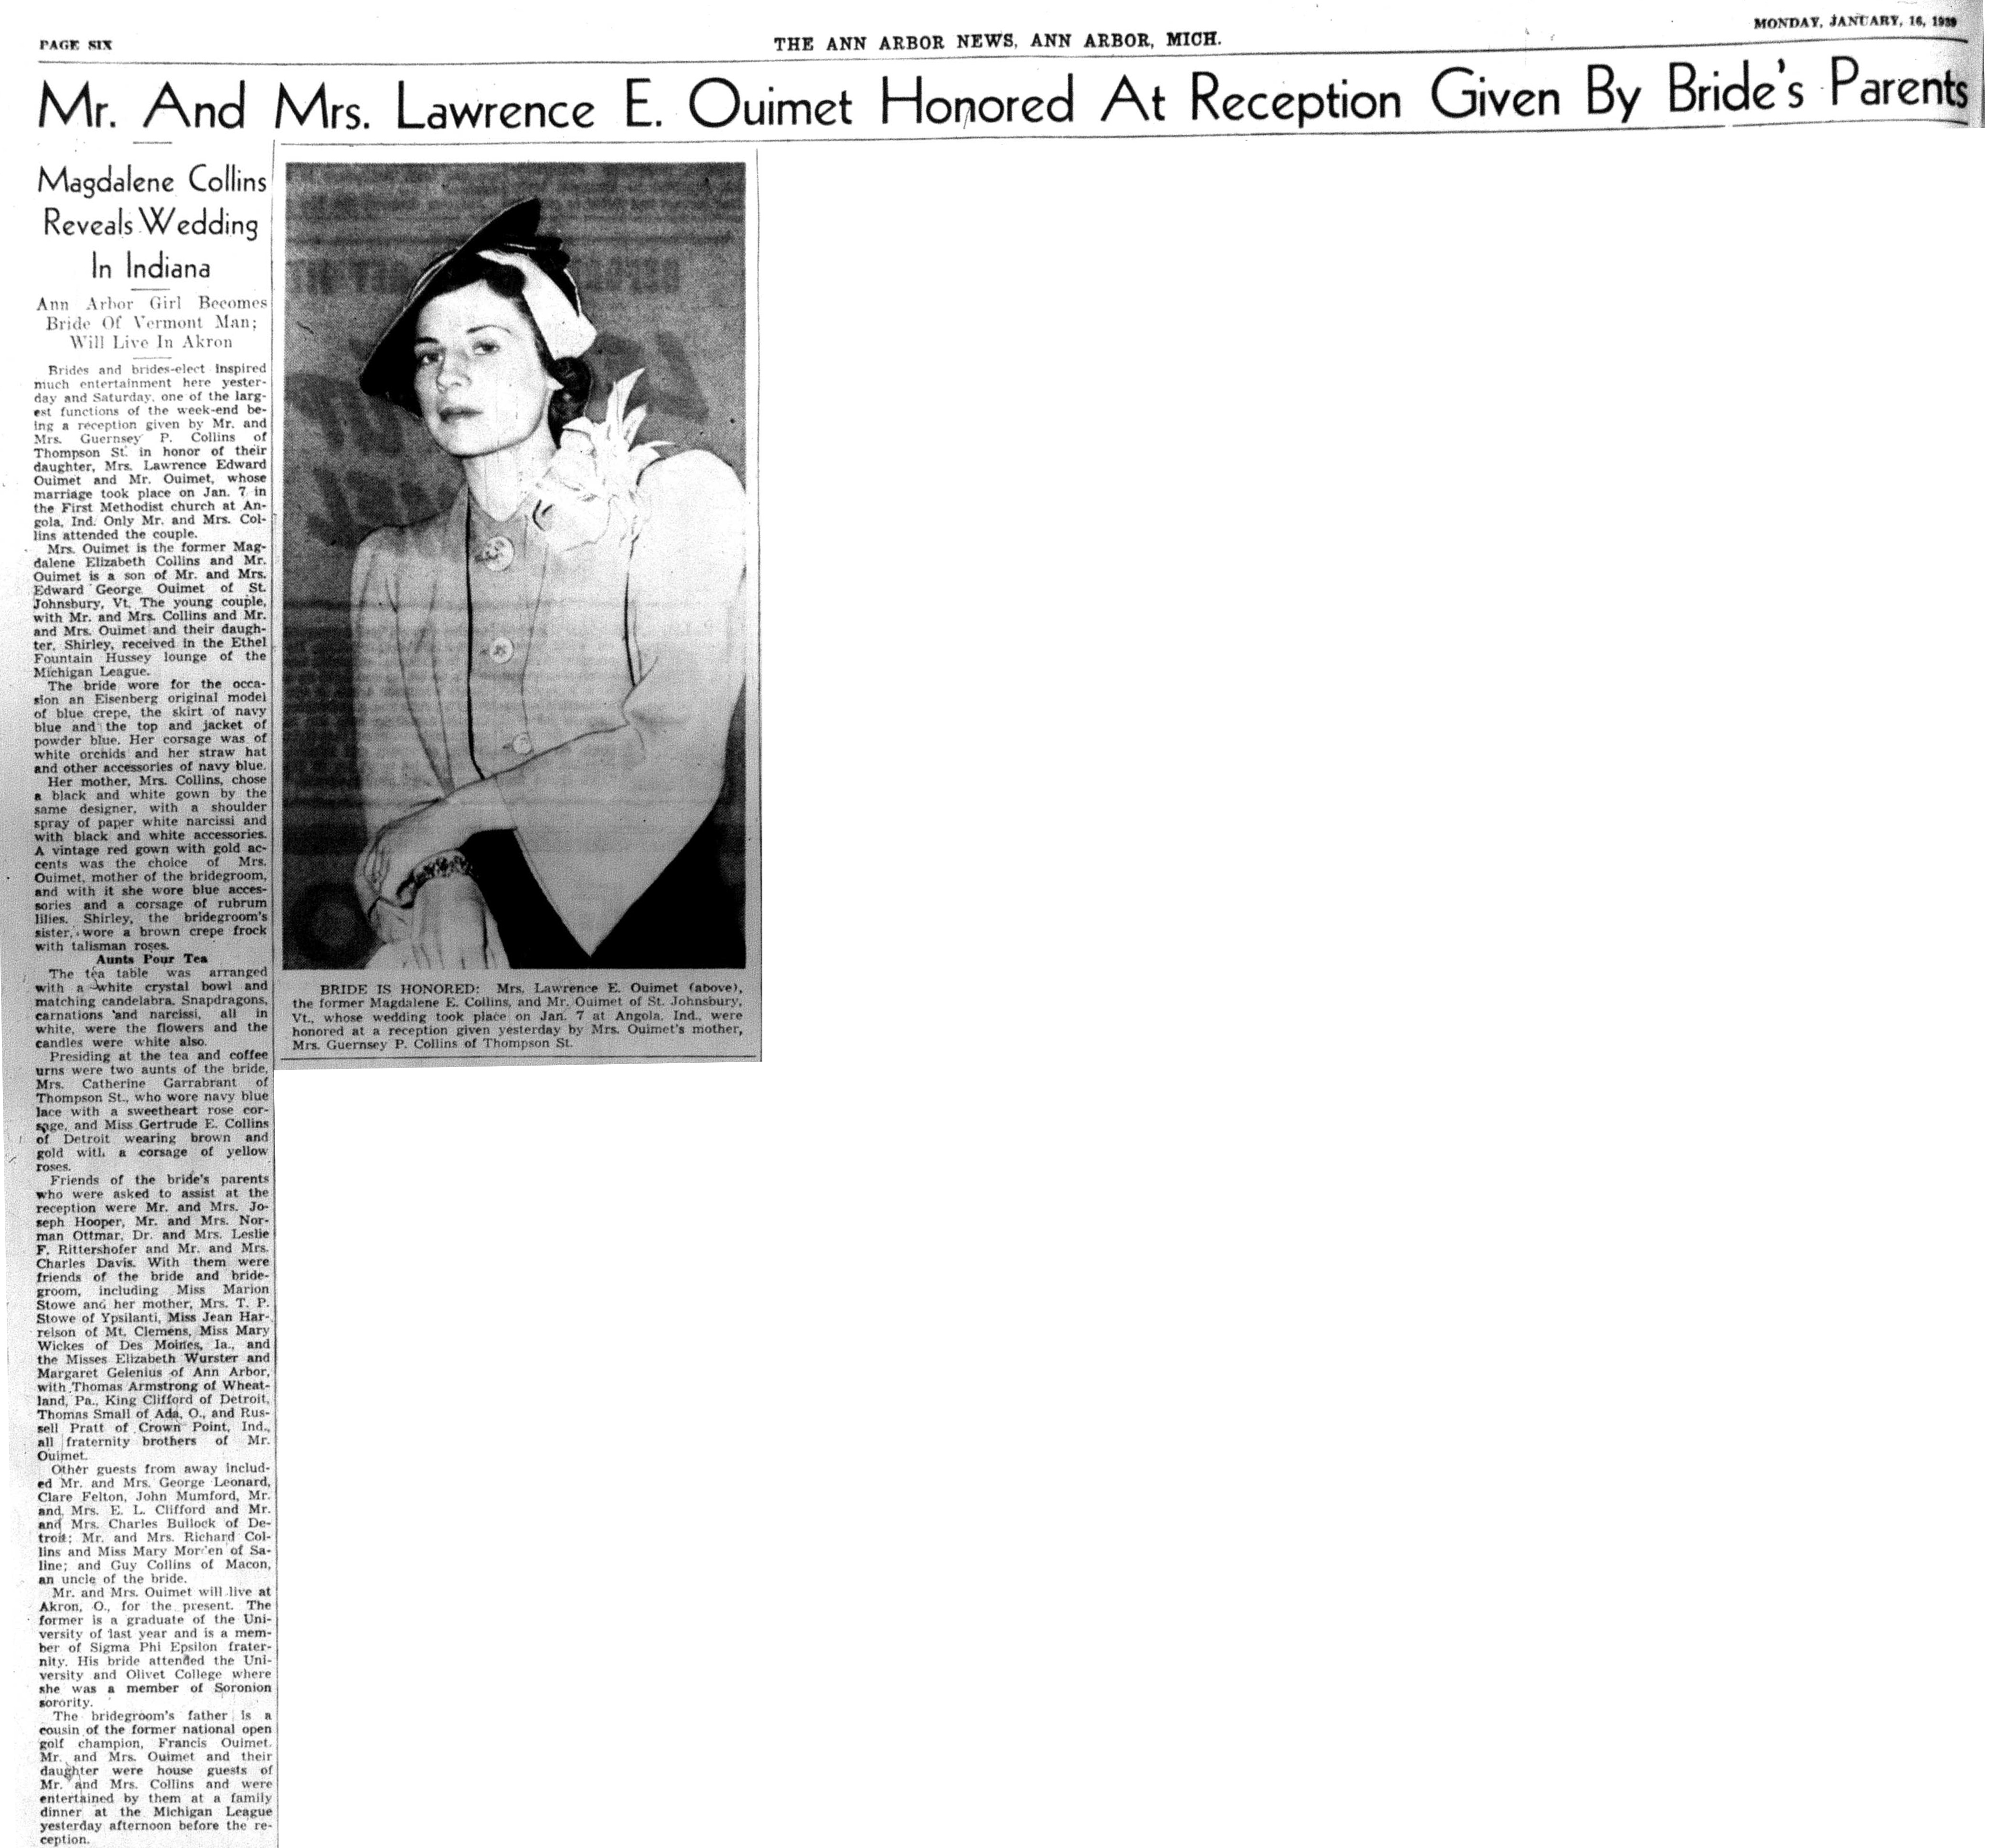 Mr. and Mrs. Lawrence E. Ouimet Honored At Reception Given By Bride's Parents image